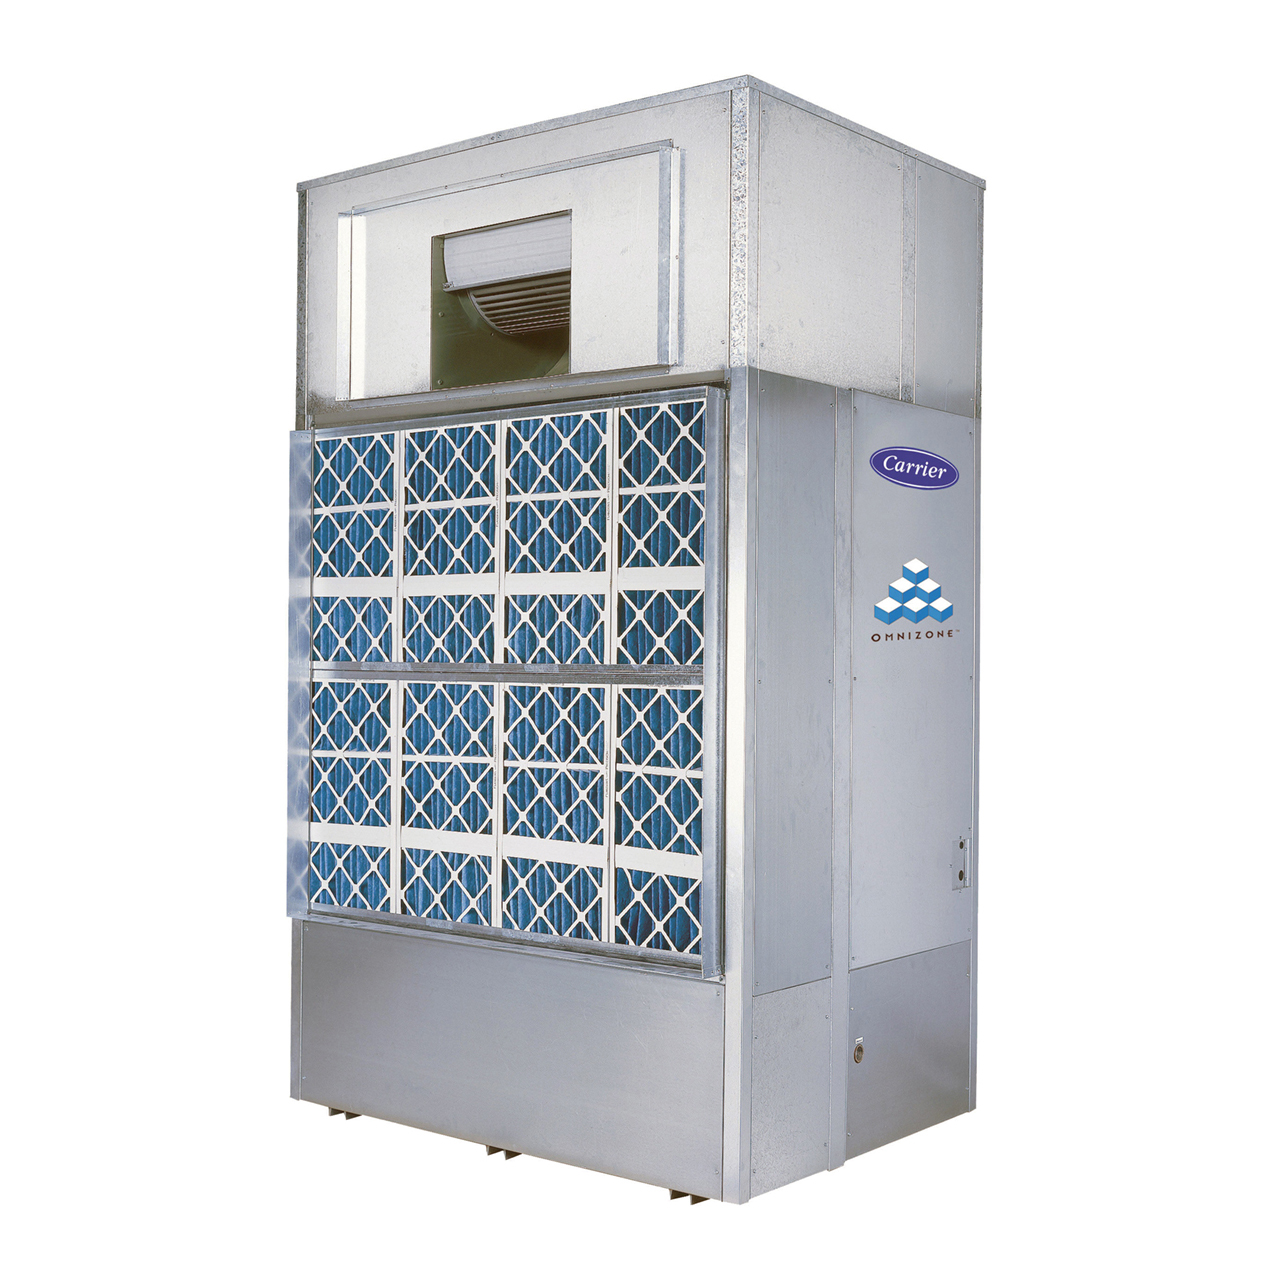 carrier-50bvz-air-cooled-variable-volume-heat-pump-modular-indoor-self-contained-unit